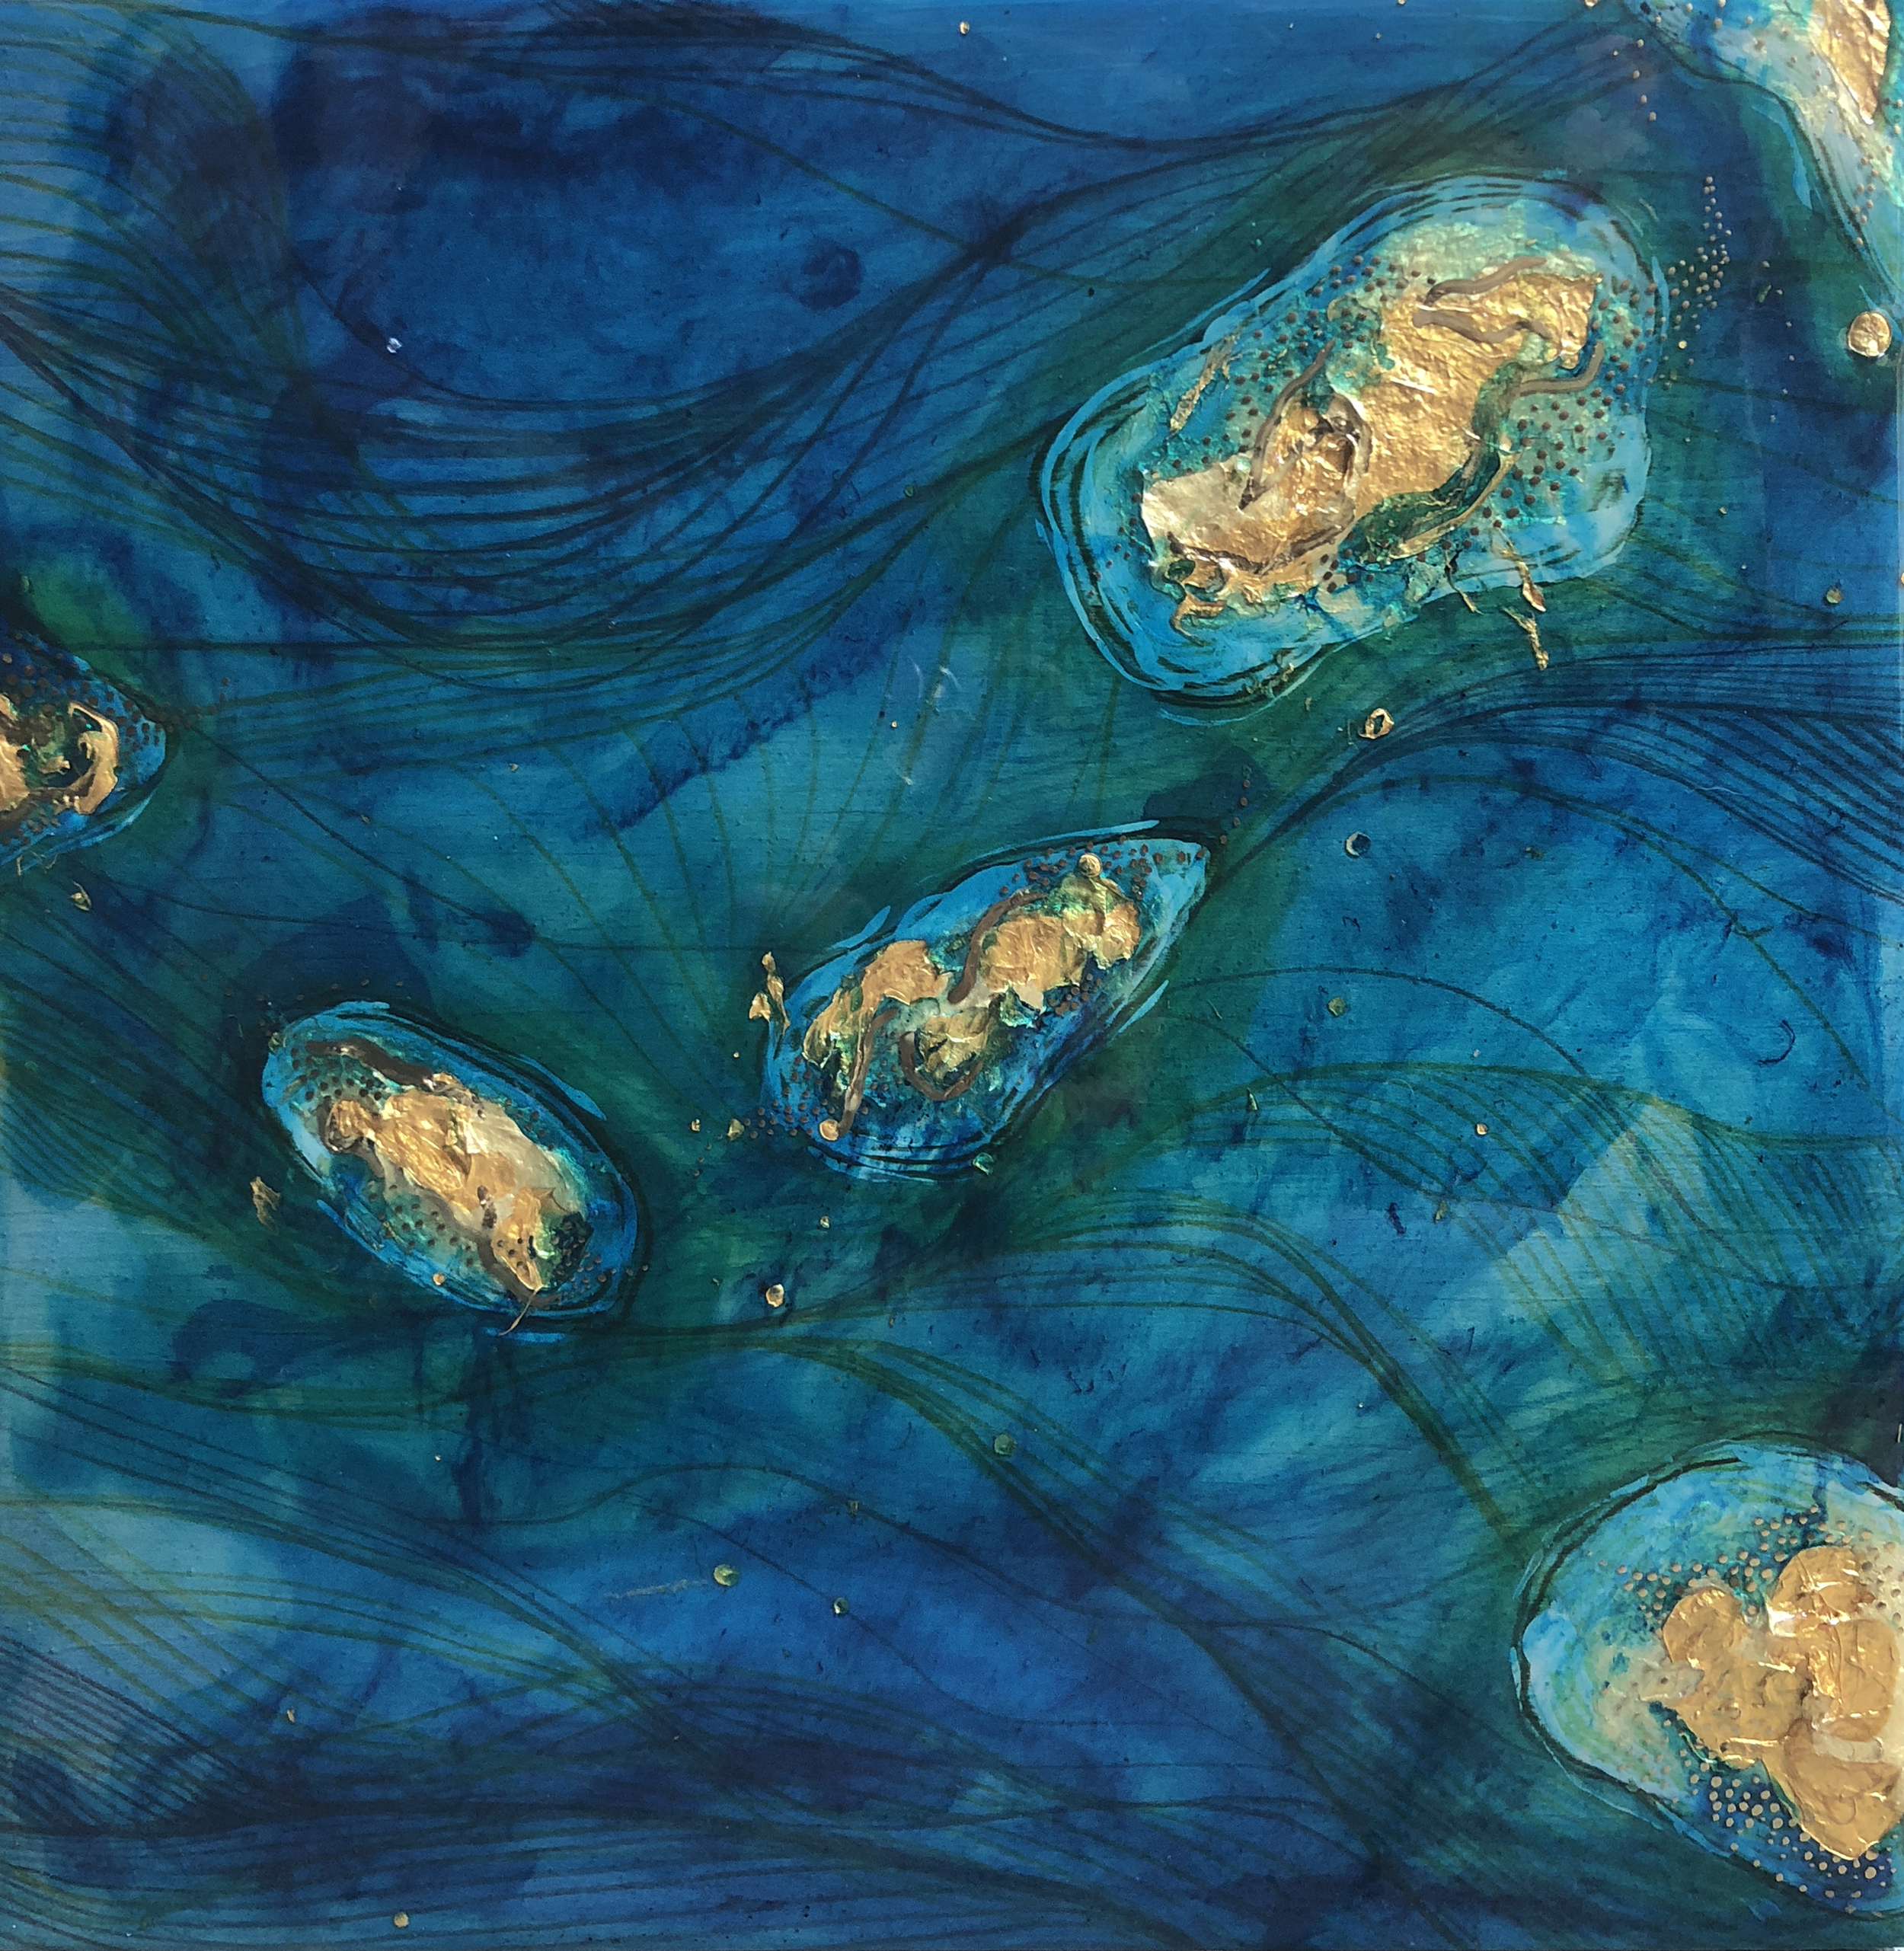 No man is an Island. - This piece is inspired by Randall's love of the Indonesian Islands, his weaving and fluid style of storytelling, and his deep-rooted connection to his family and his faith. Just like the land he so loves, he is a part of an ecosystem of experiences, and has witnessed the ebb and flow of these events over the course of his life. Like the constant flow of waves along a shoreline, the passage of time can do so much to change our own landscapes as well.